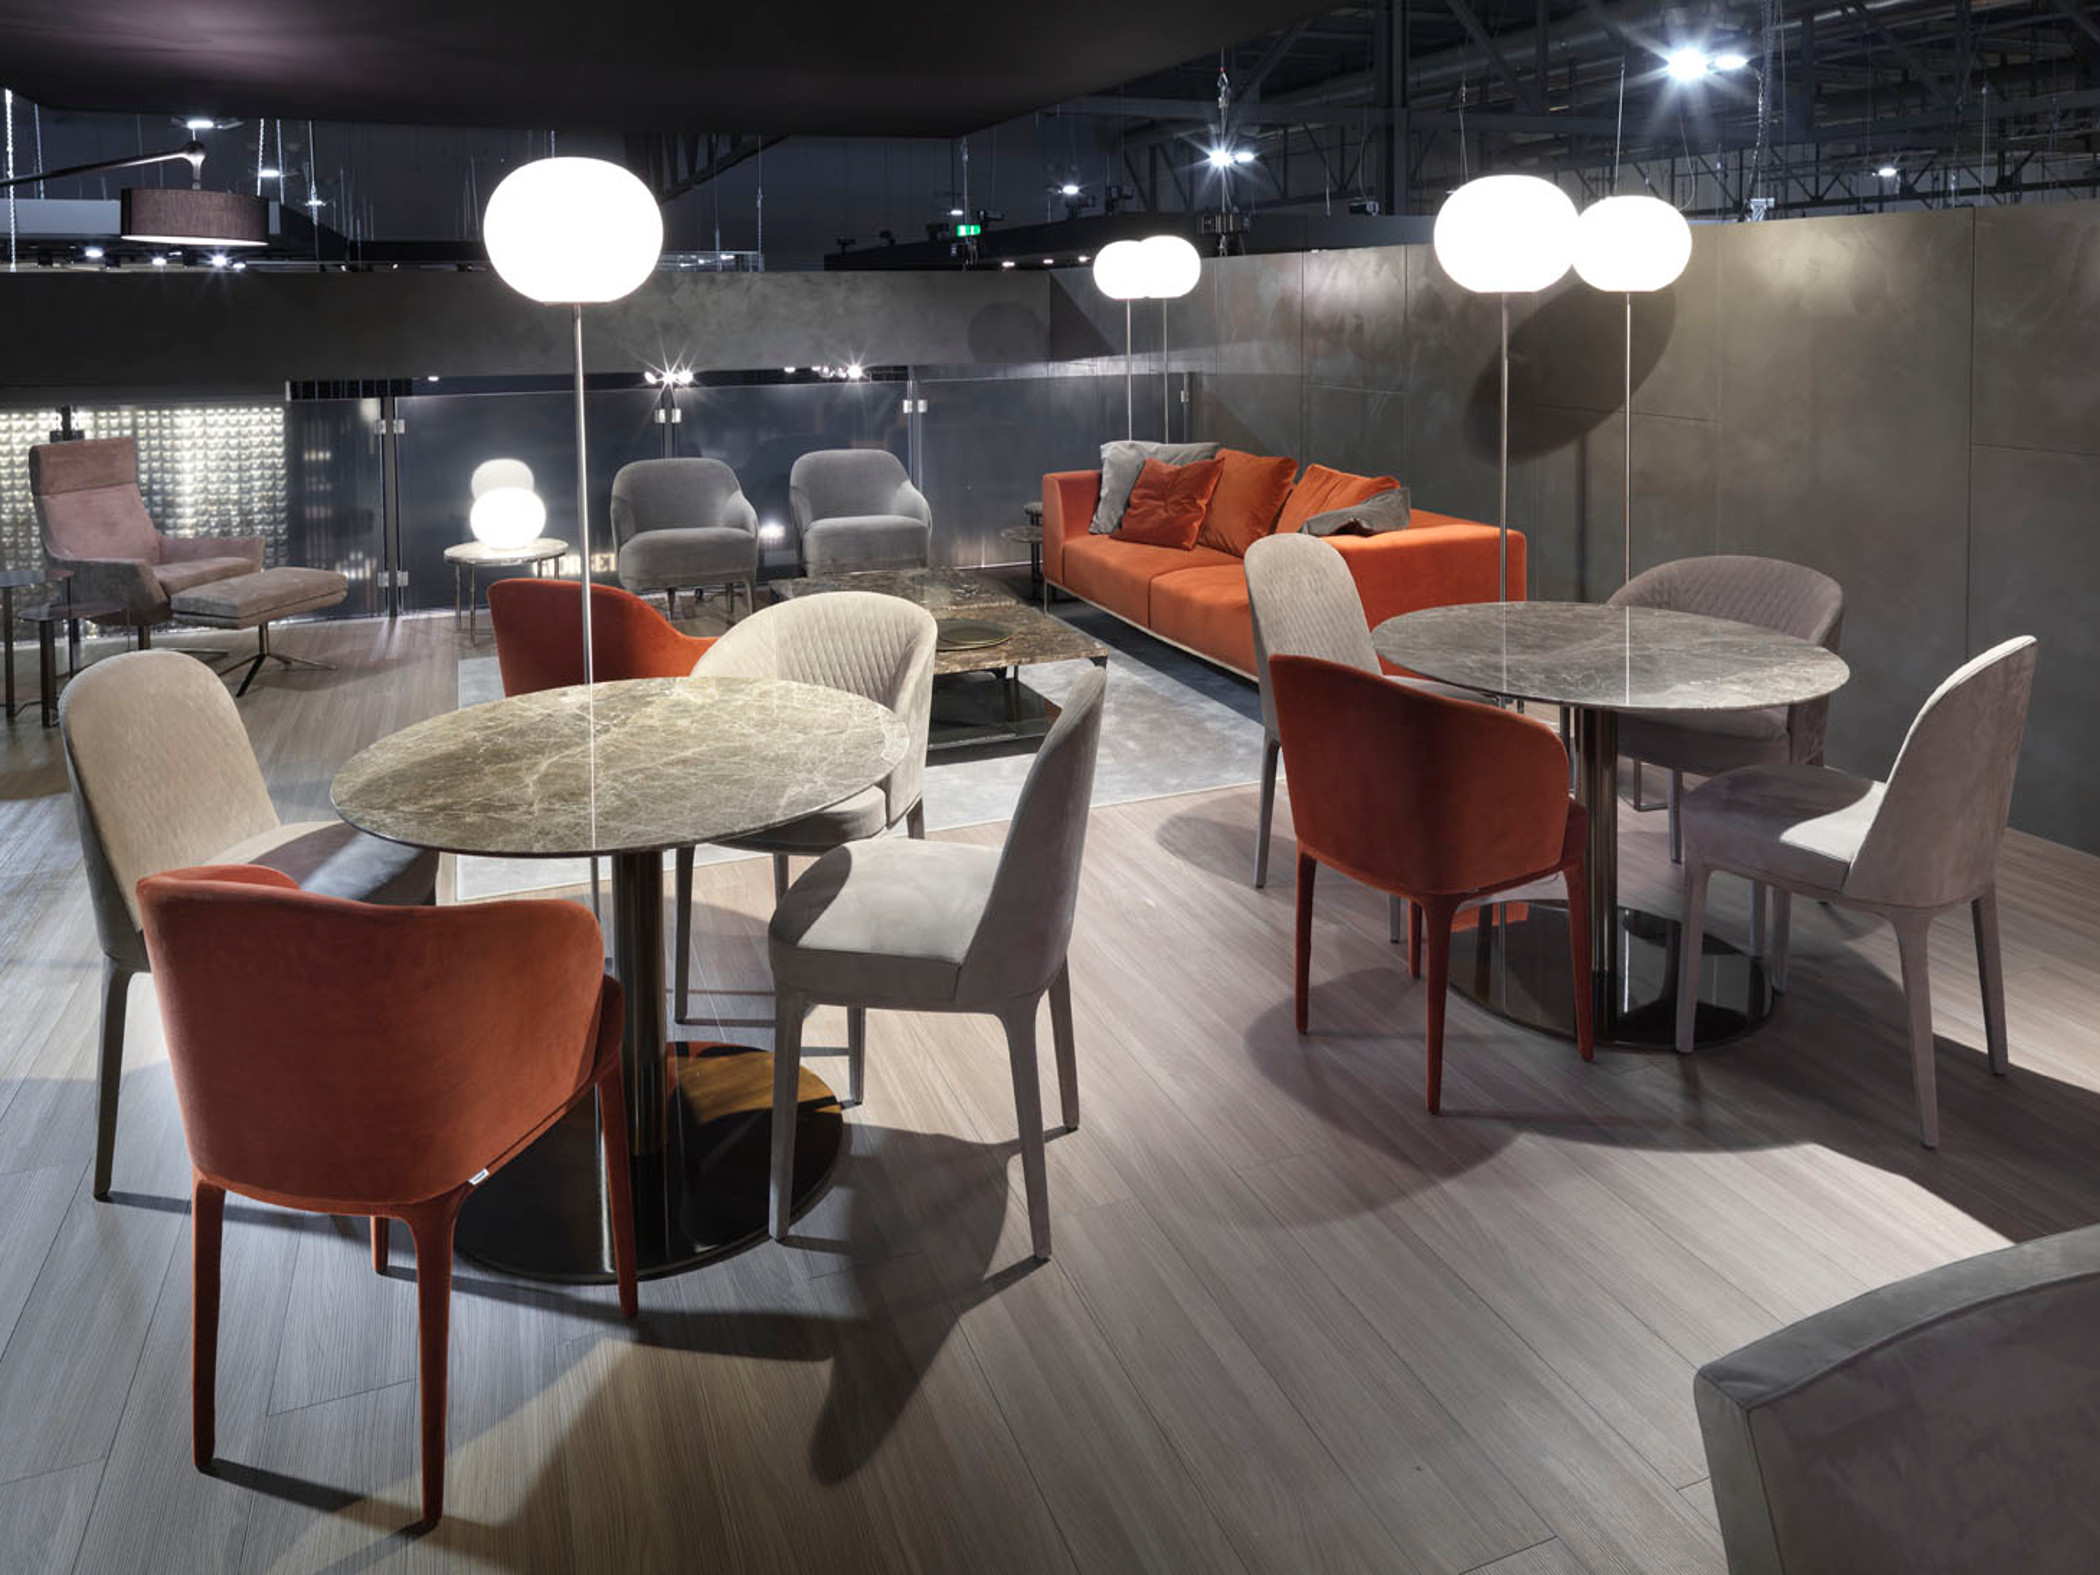 Tavoli con top in marmo, Marelli Outlet